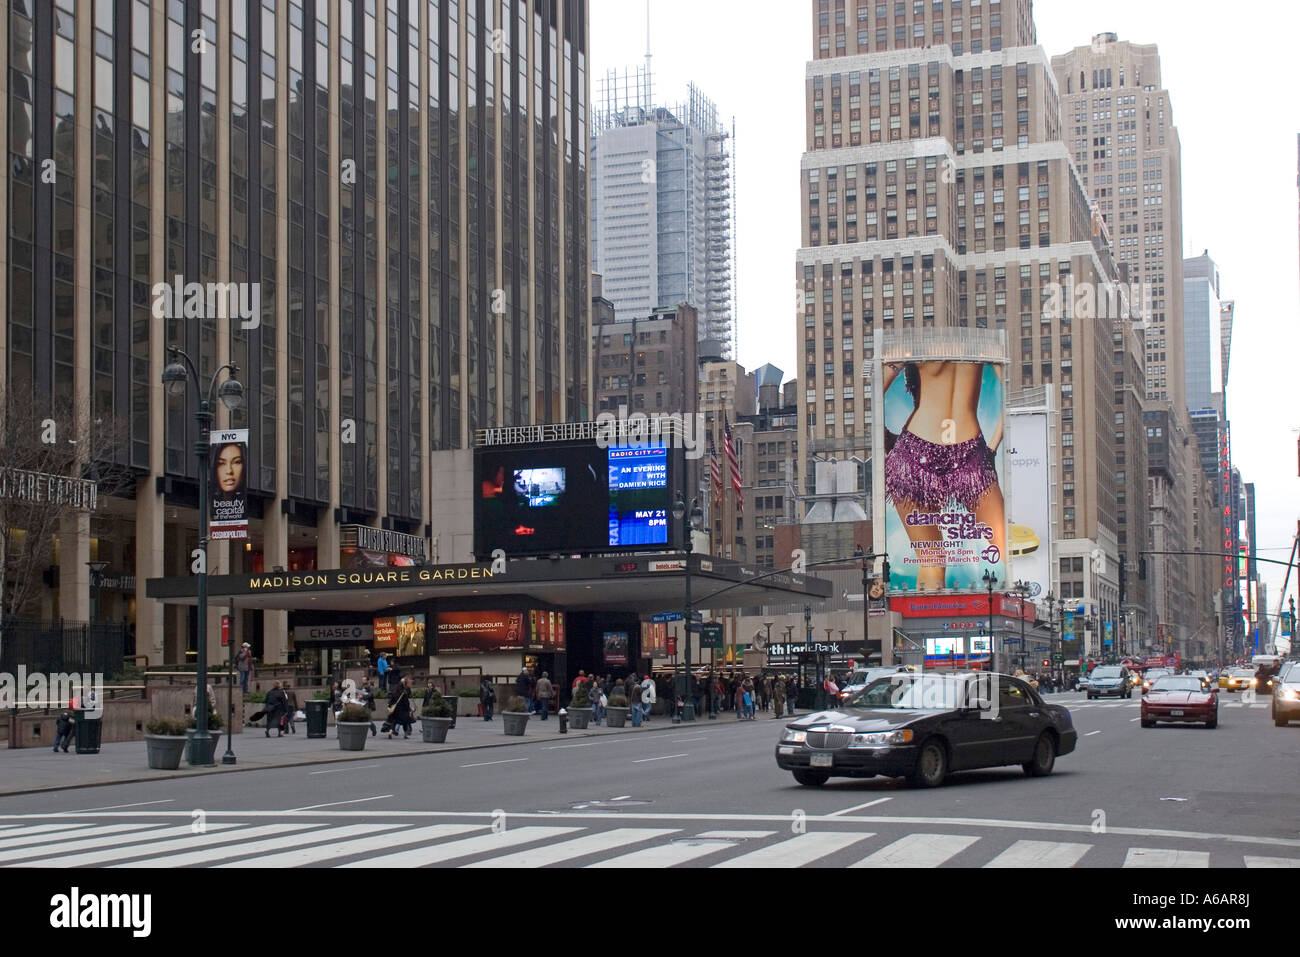 Penn Station and Madison Square Garden, Seventh Avenue New York City